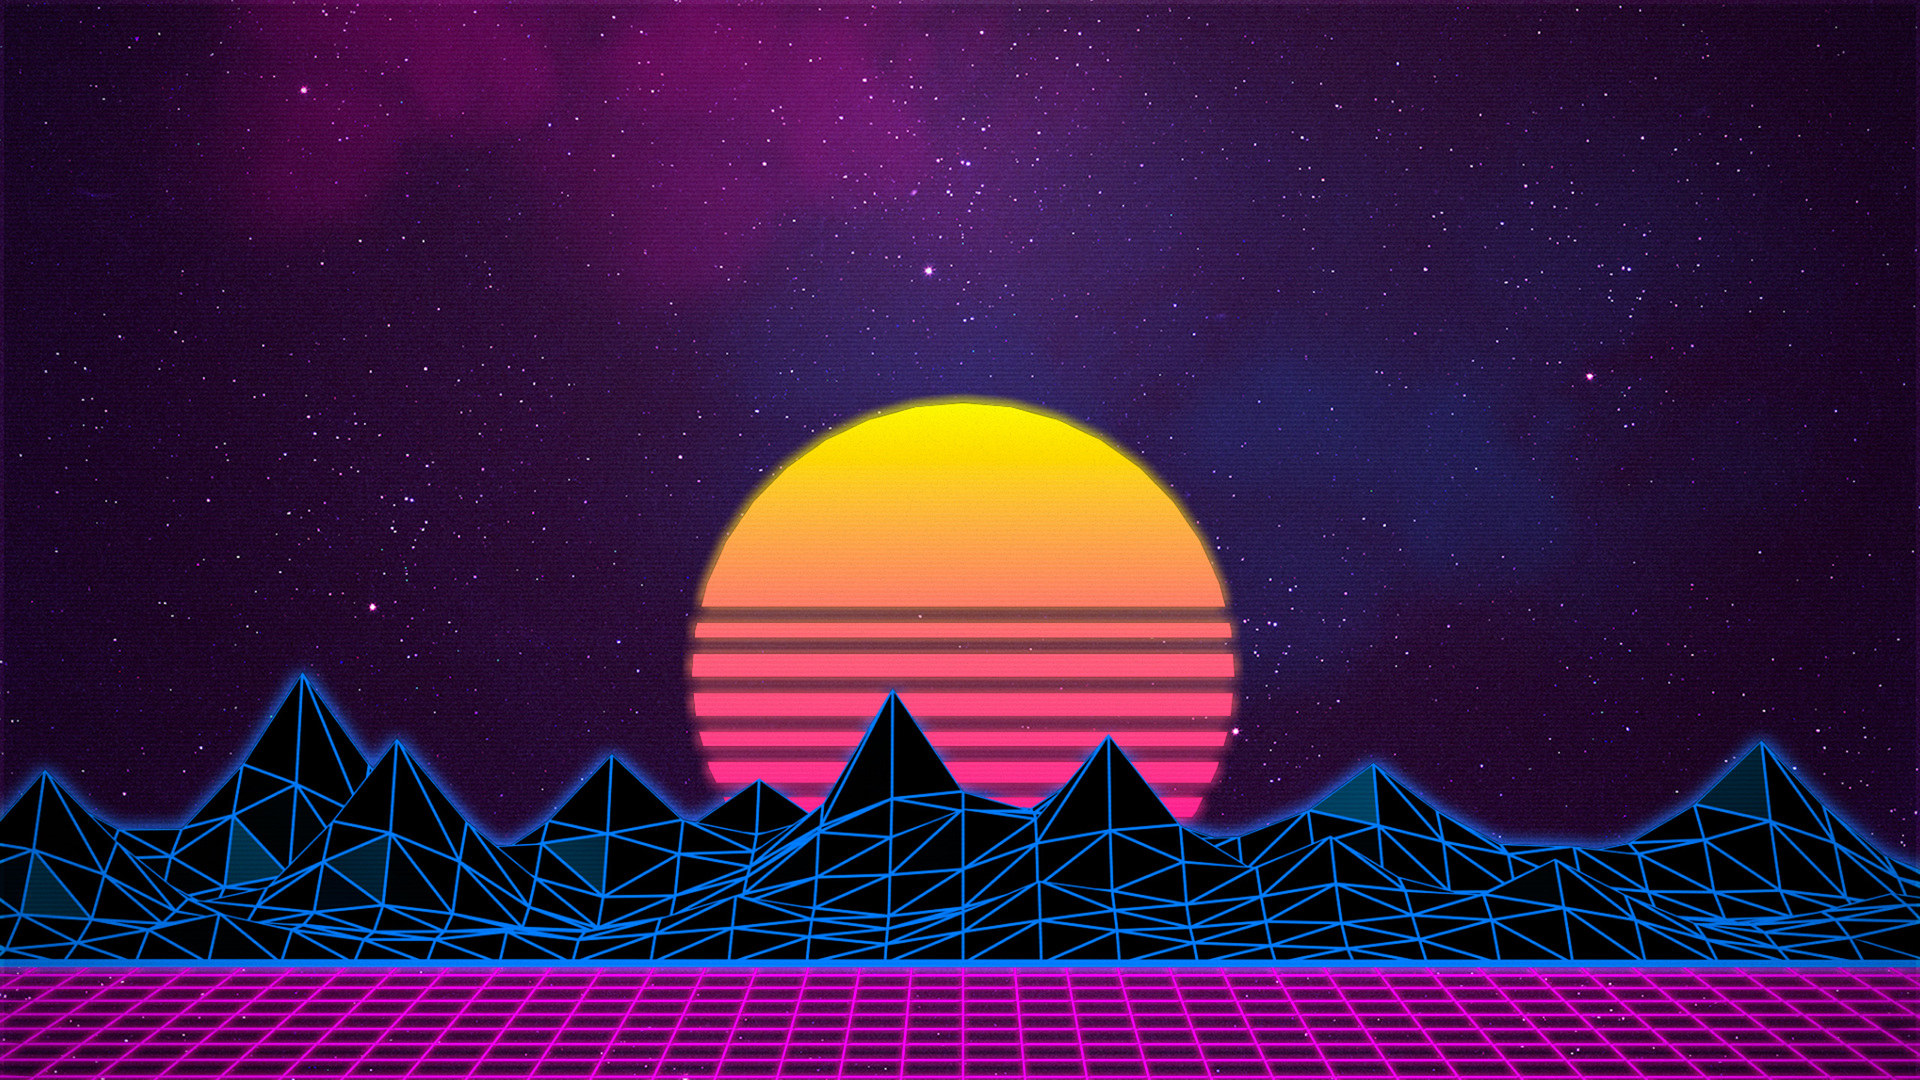 3d Wallpaper 800x1280 1920x1080 Retrowave Laptop Full Hd 1080p Hd 4k Wallpapers